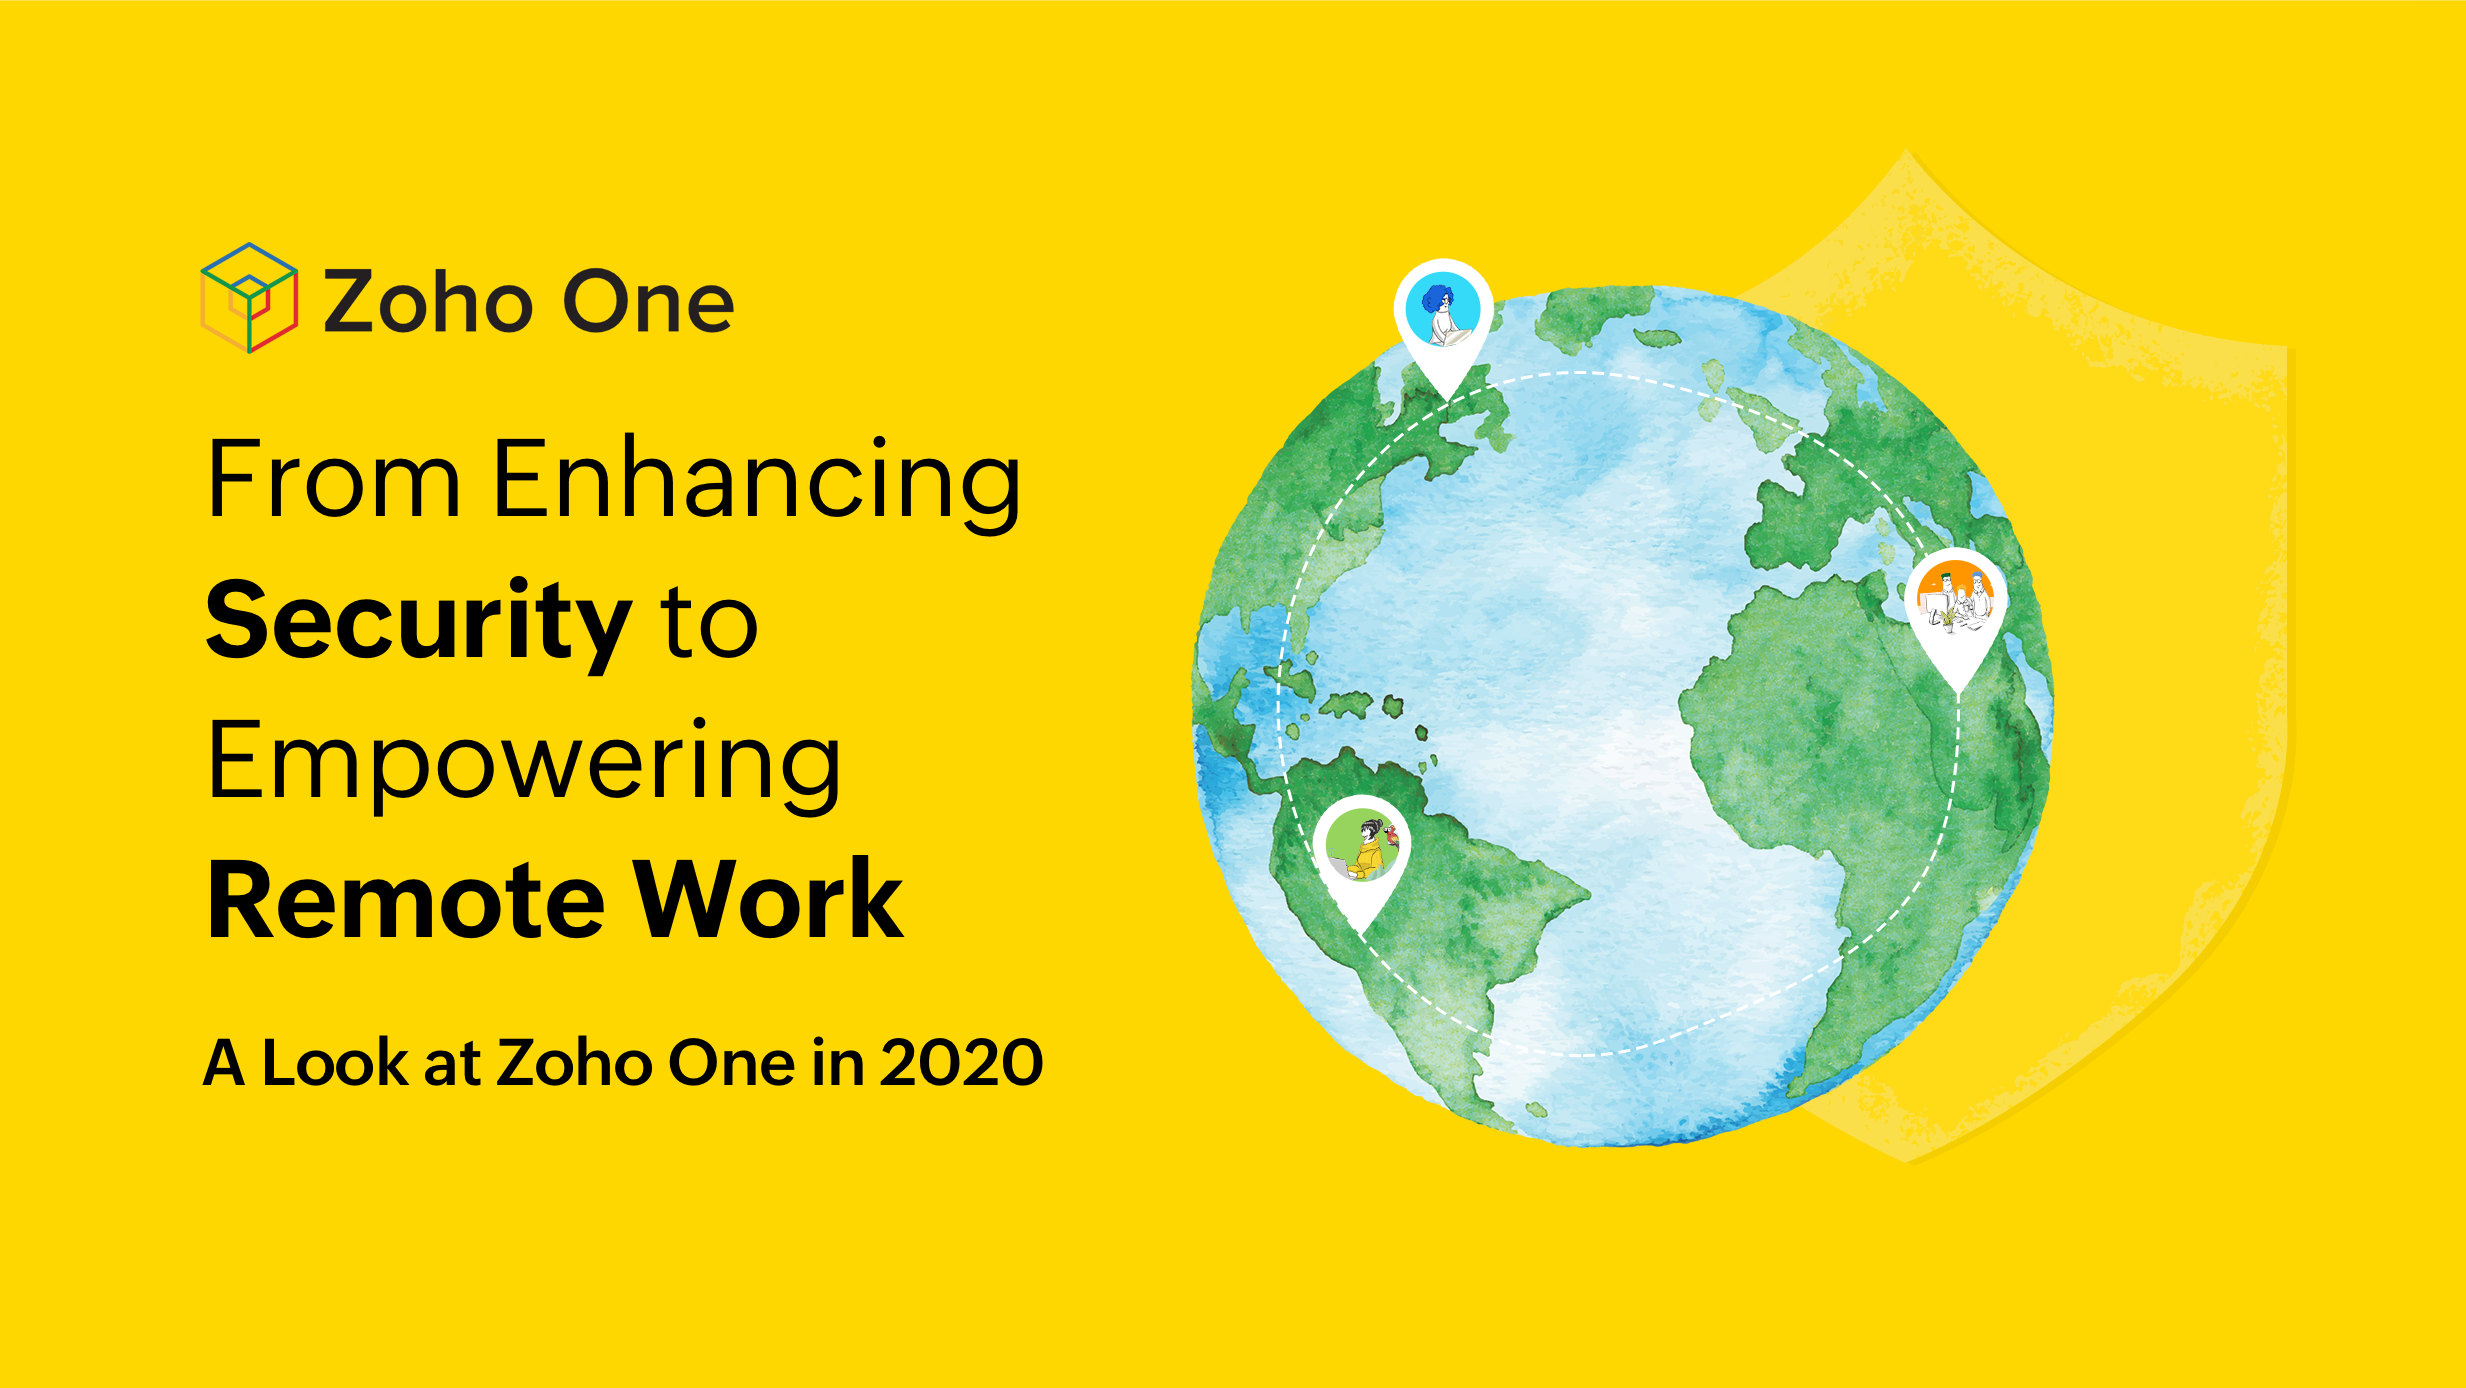 From Enhancing Security to Empowering Remote Work: A Look at Zoho One in 2020